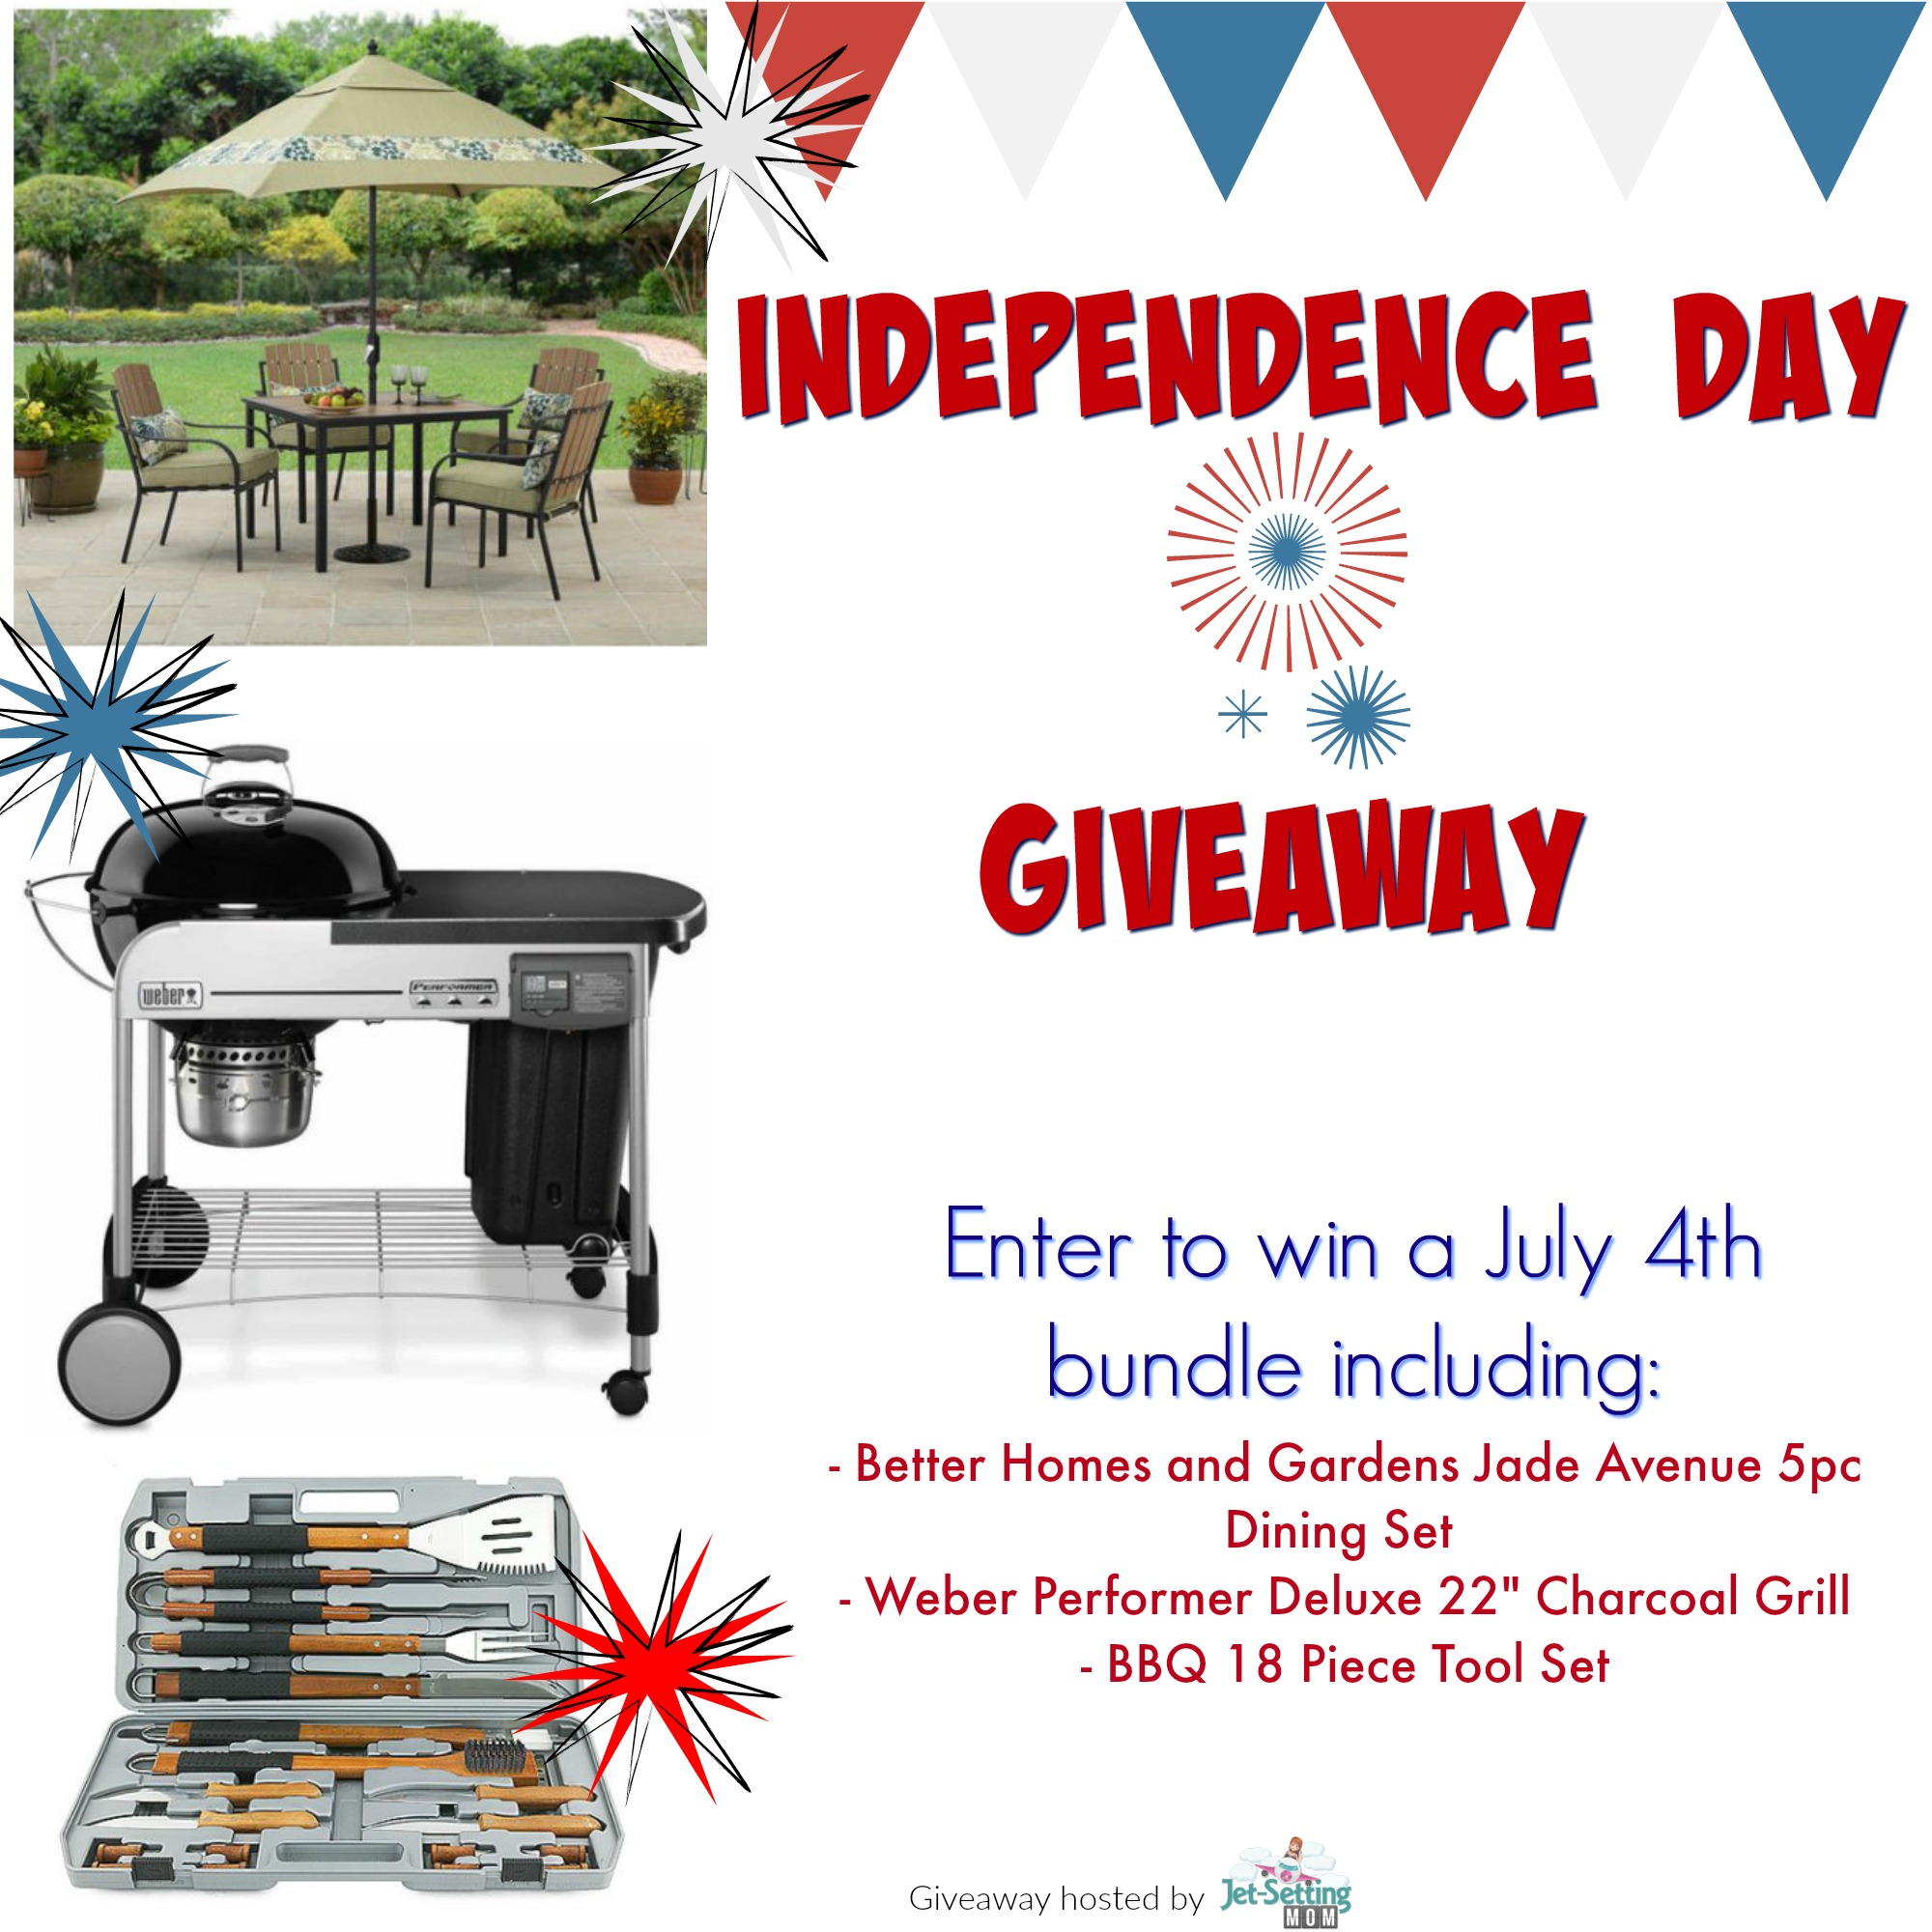 Enter to win over $800 in prizes in the Independence Day Giveaway